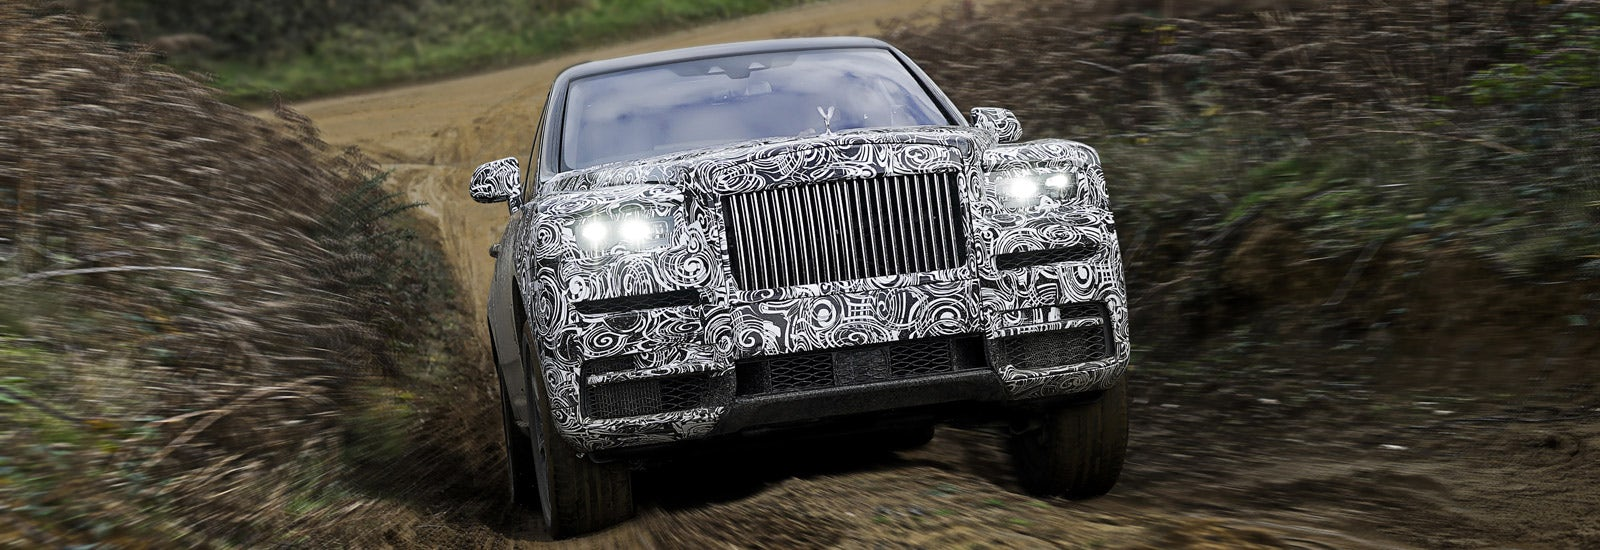 Rolls-Royce Cullinan SUV Price, Specs And Release Date